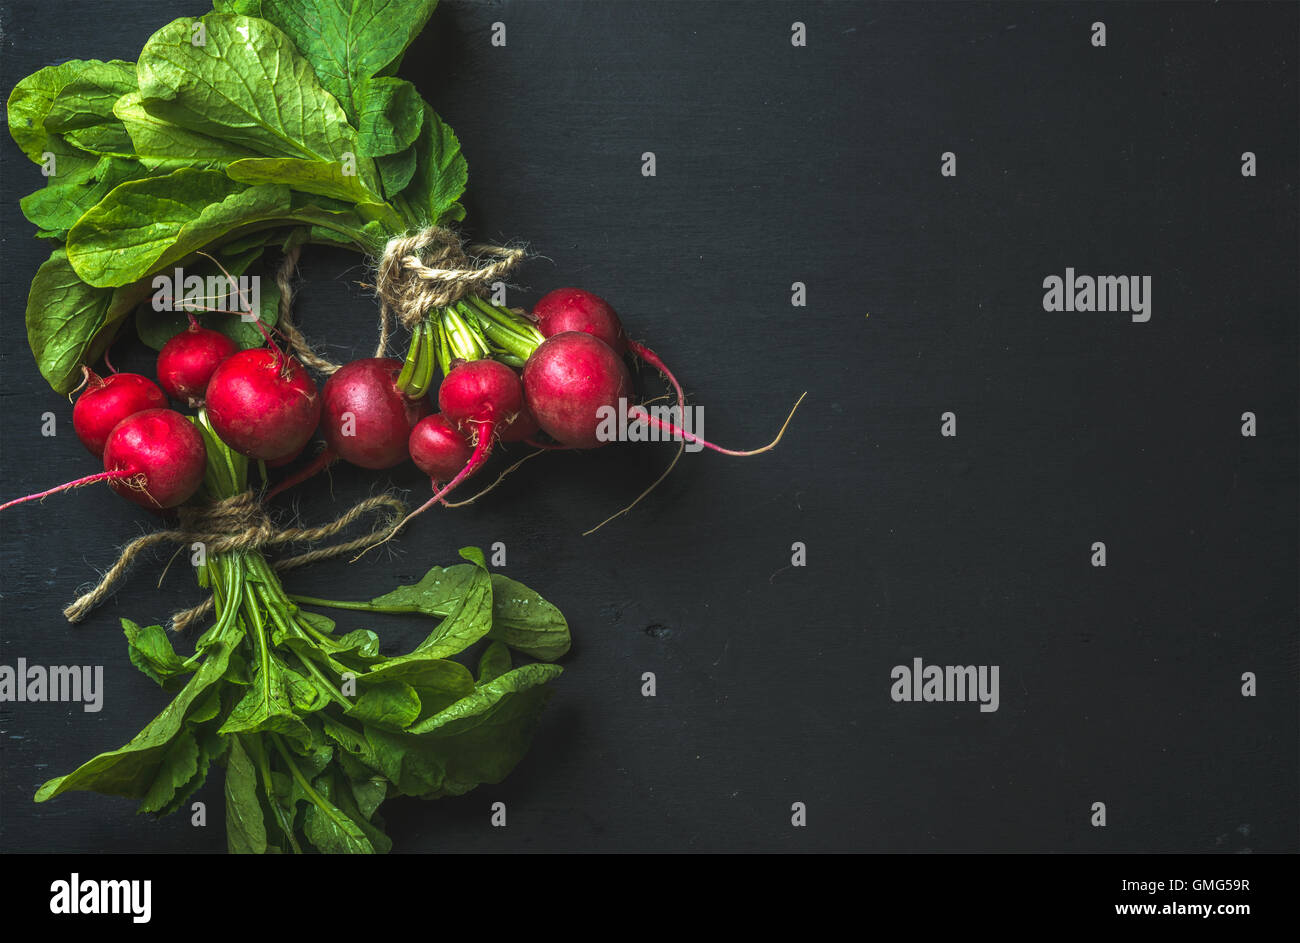 Bunch of radish with leaves on black background - Stock Image